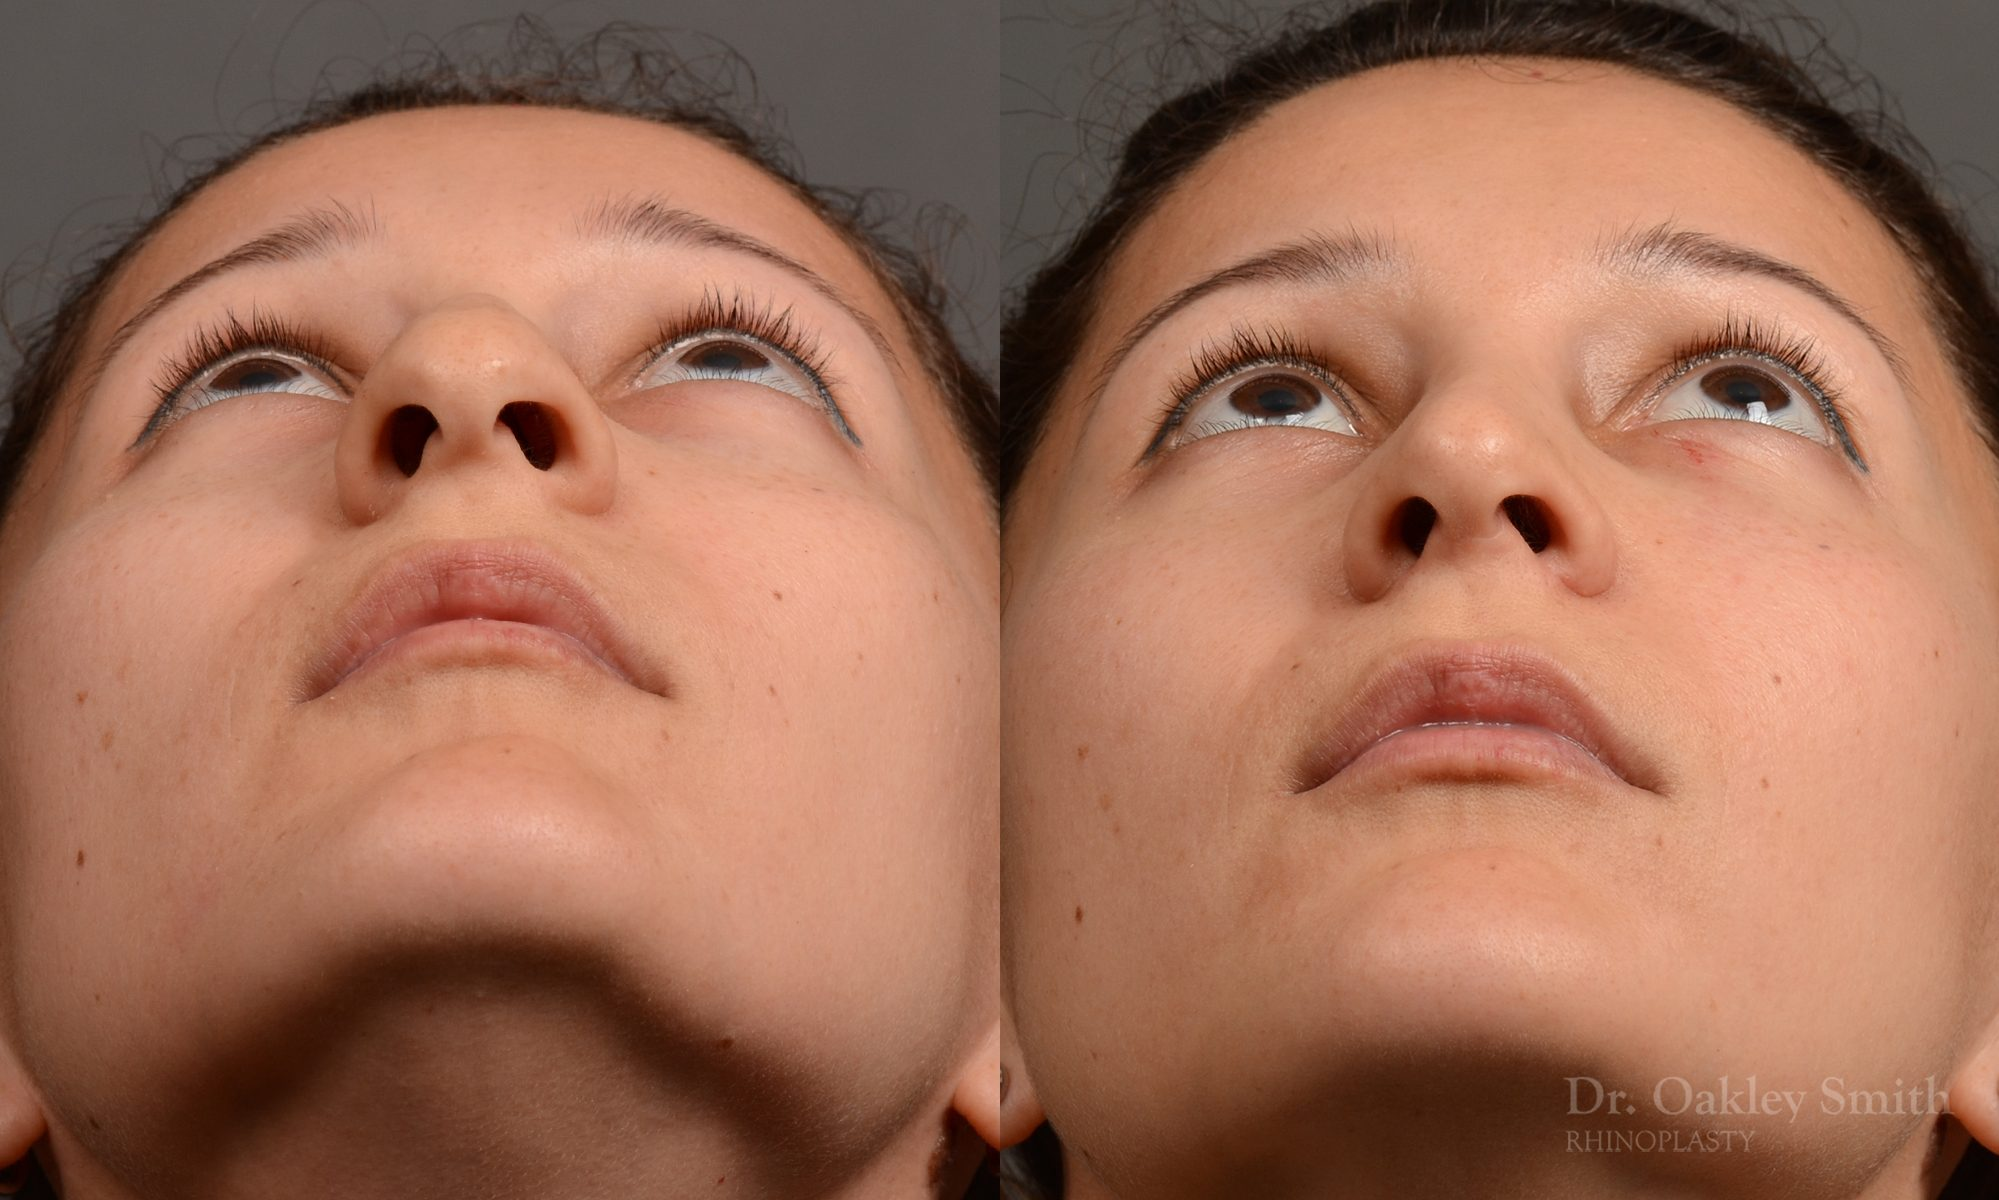 Hump Reduction, Rhinoplasty - Rhinoplasty Before and After Case 332